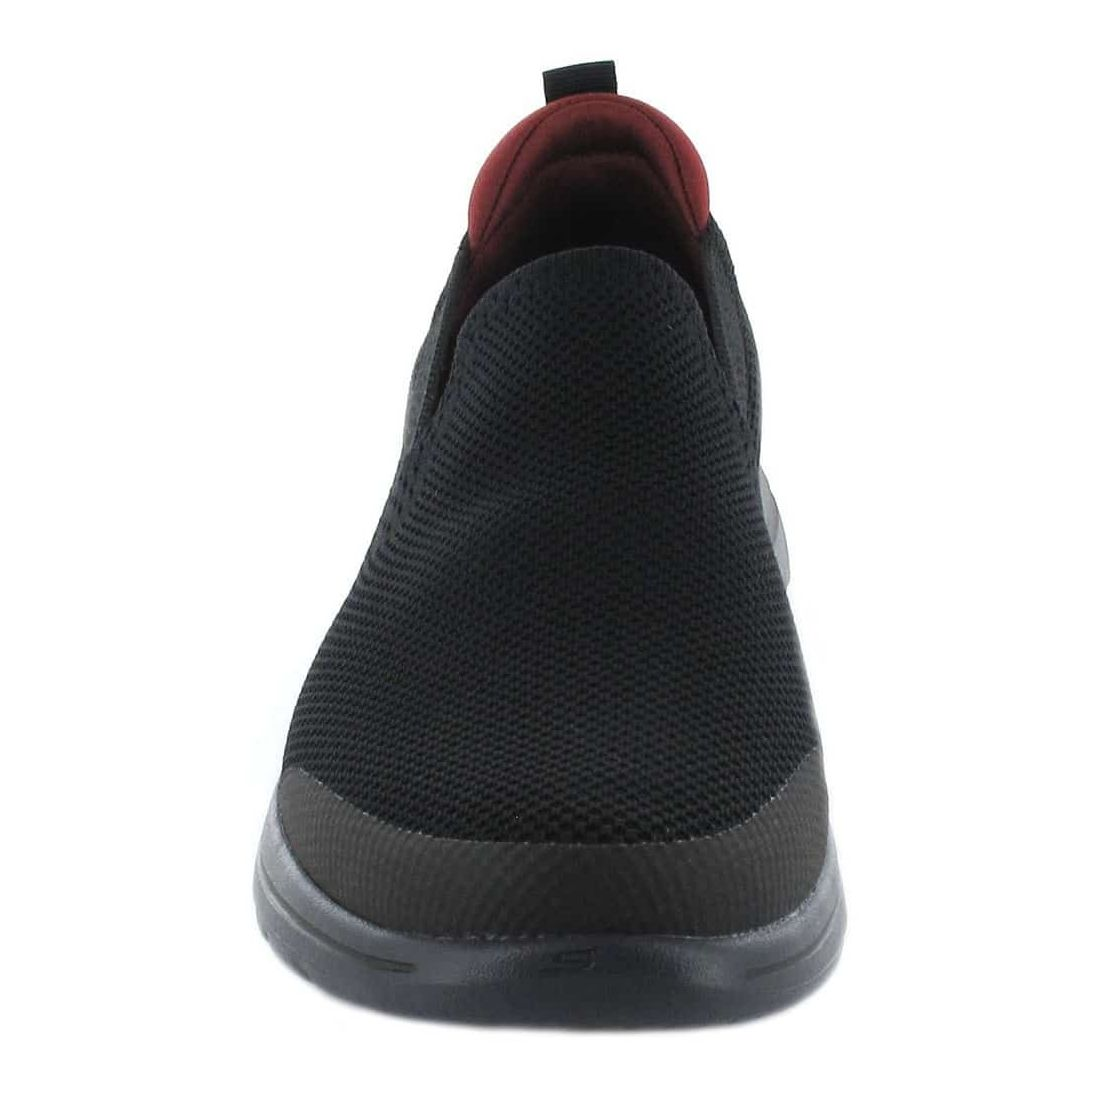 Skechers GOwalk 5 Black - Casual Footwear Man